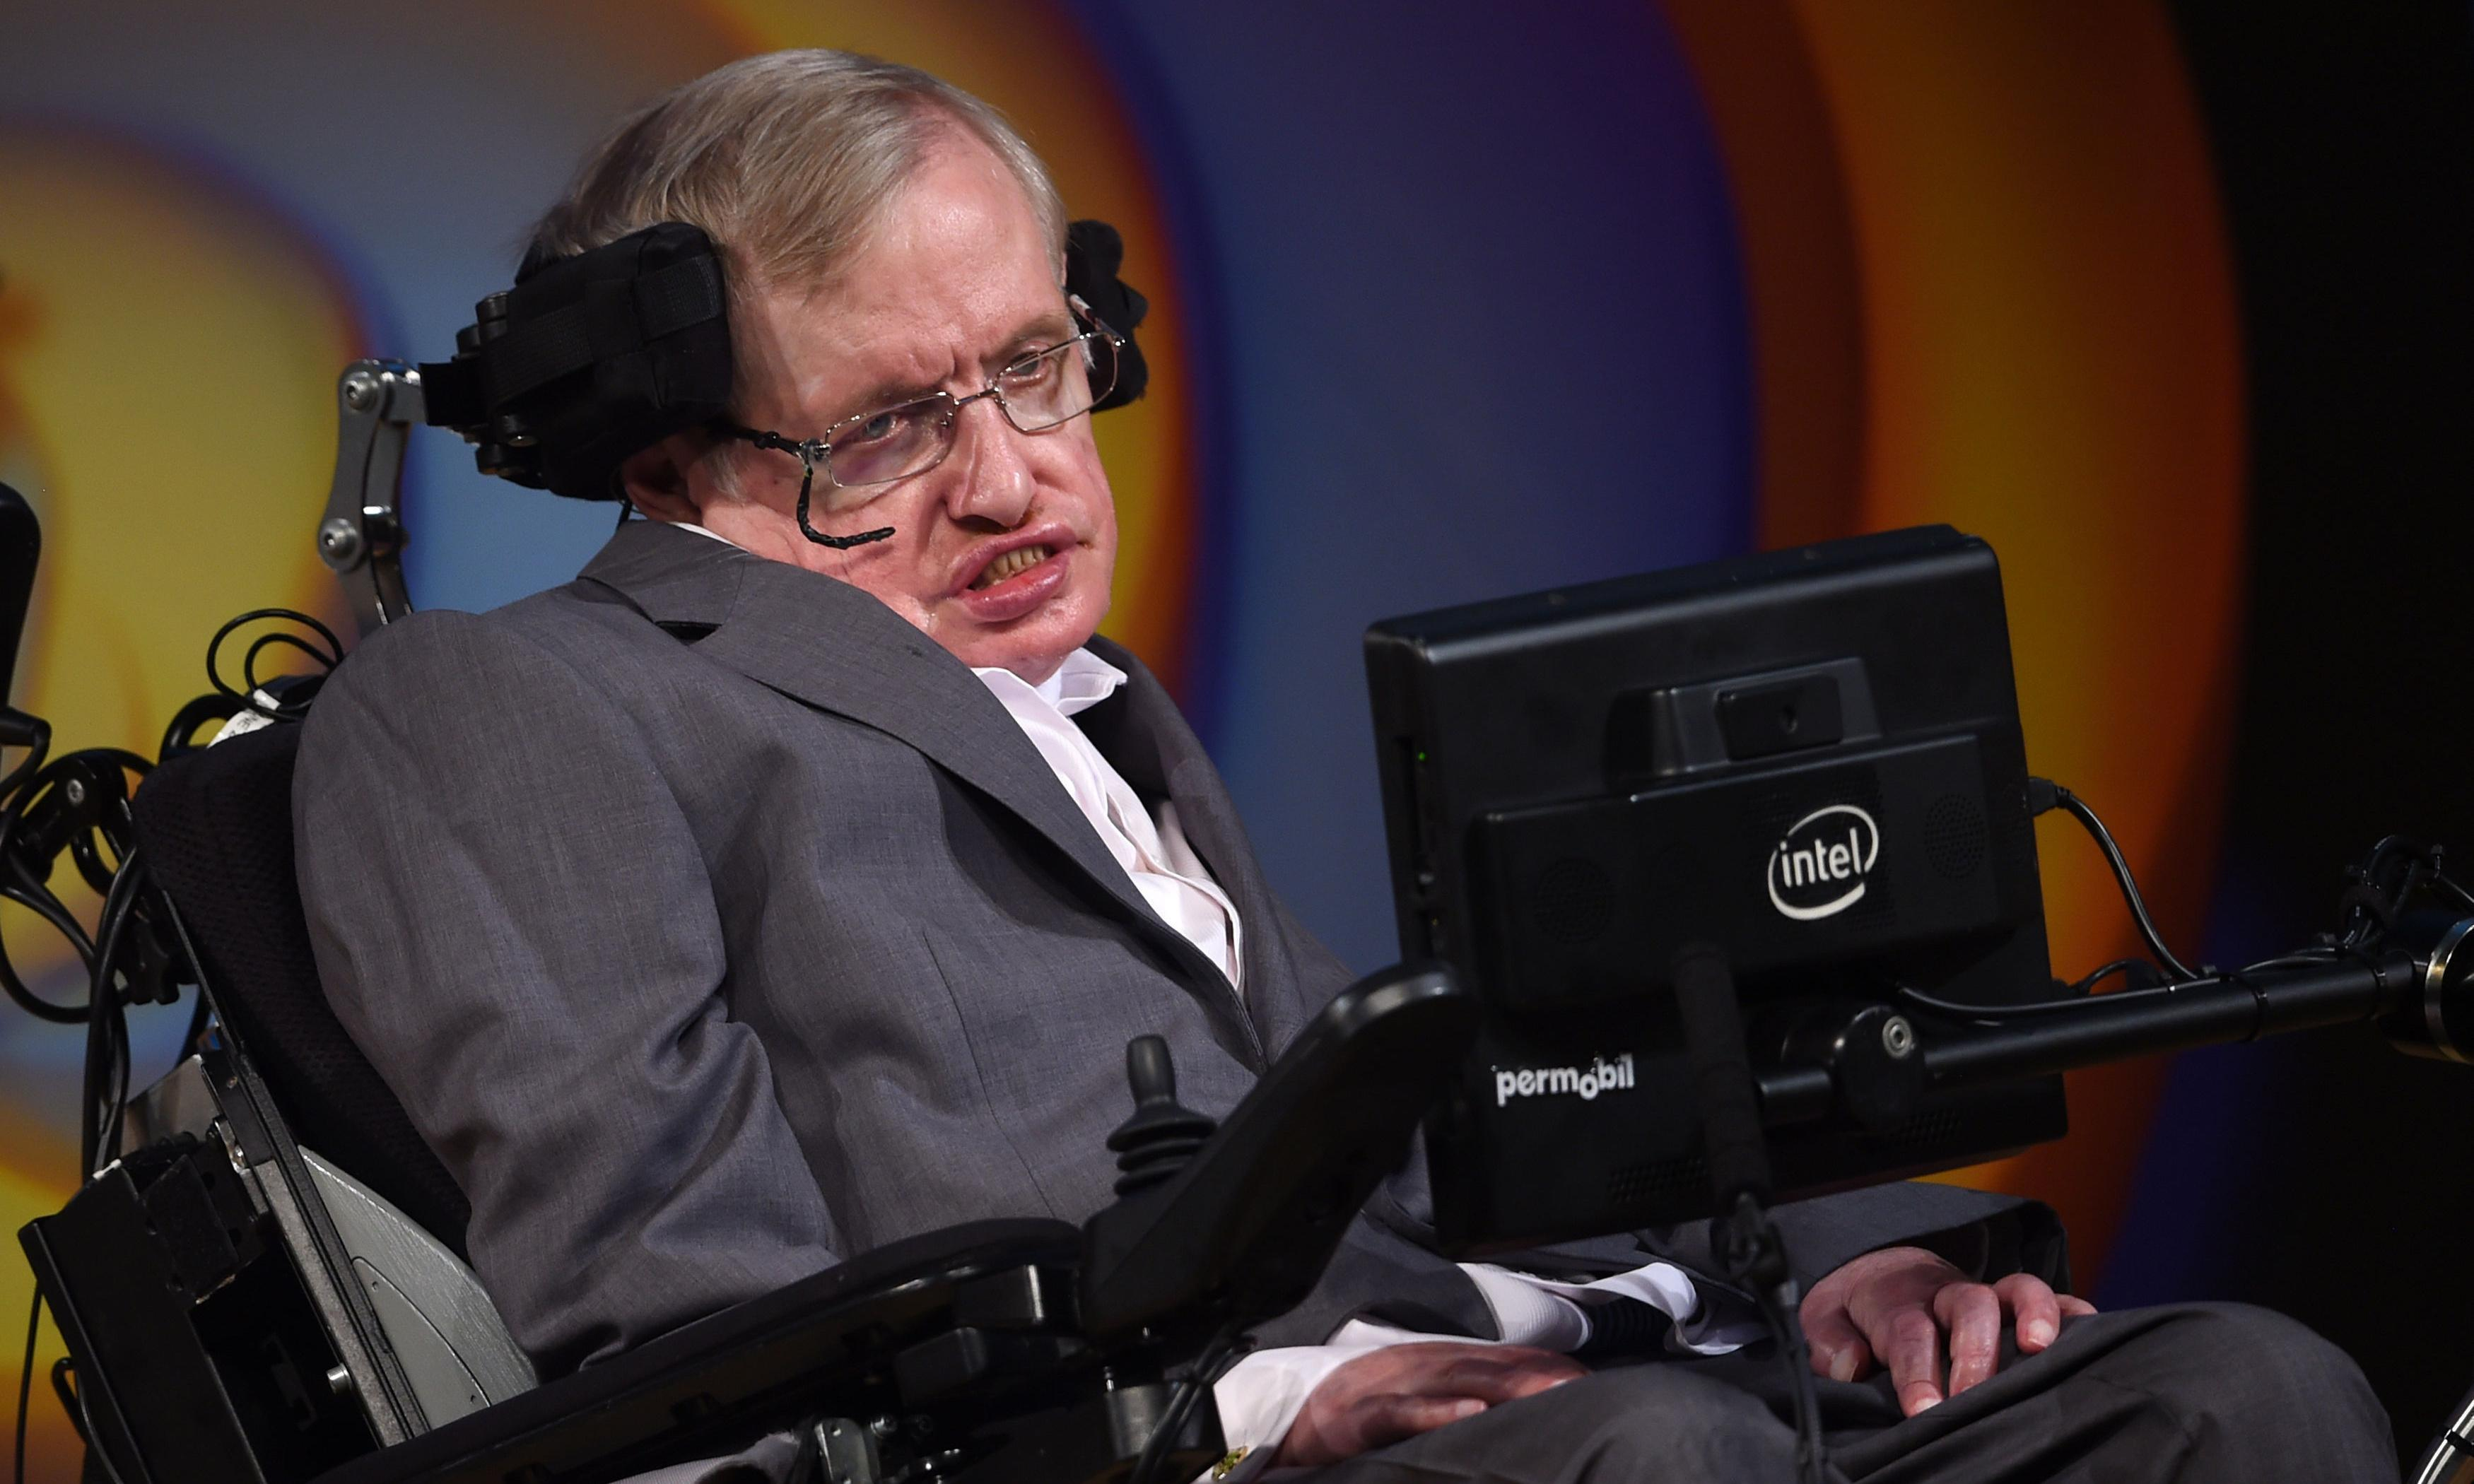 Essays reveal Stephen Hawking predicted race of 'superhumans'